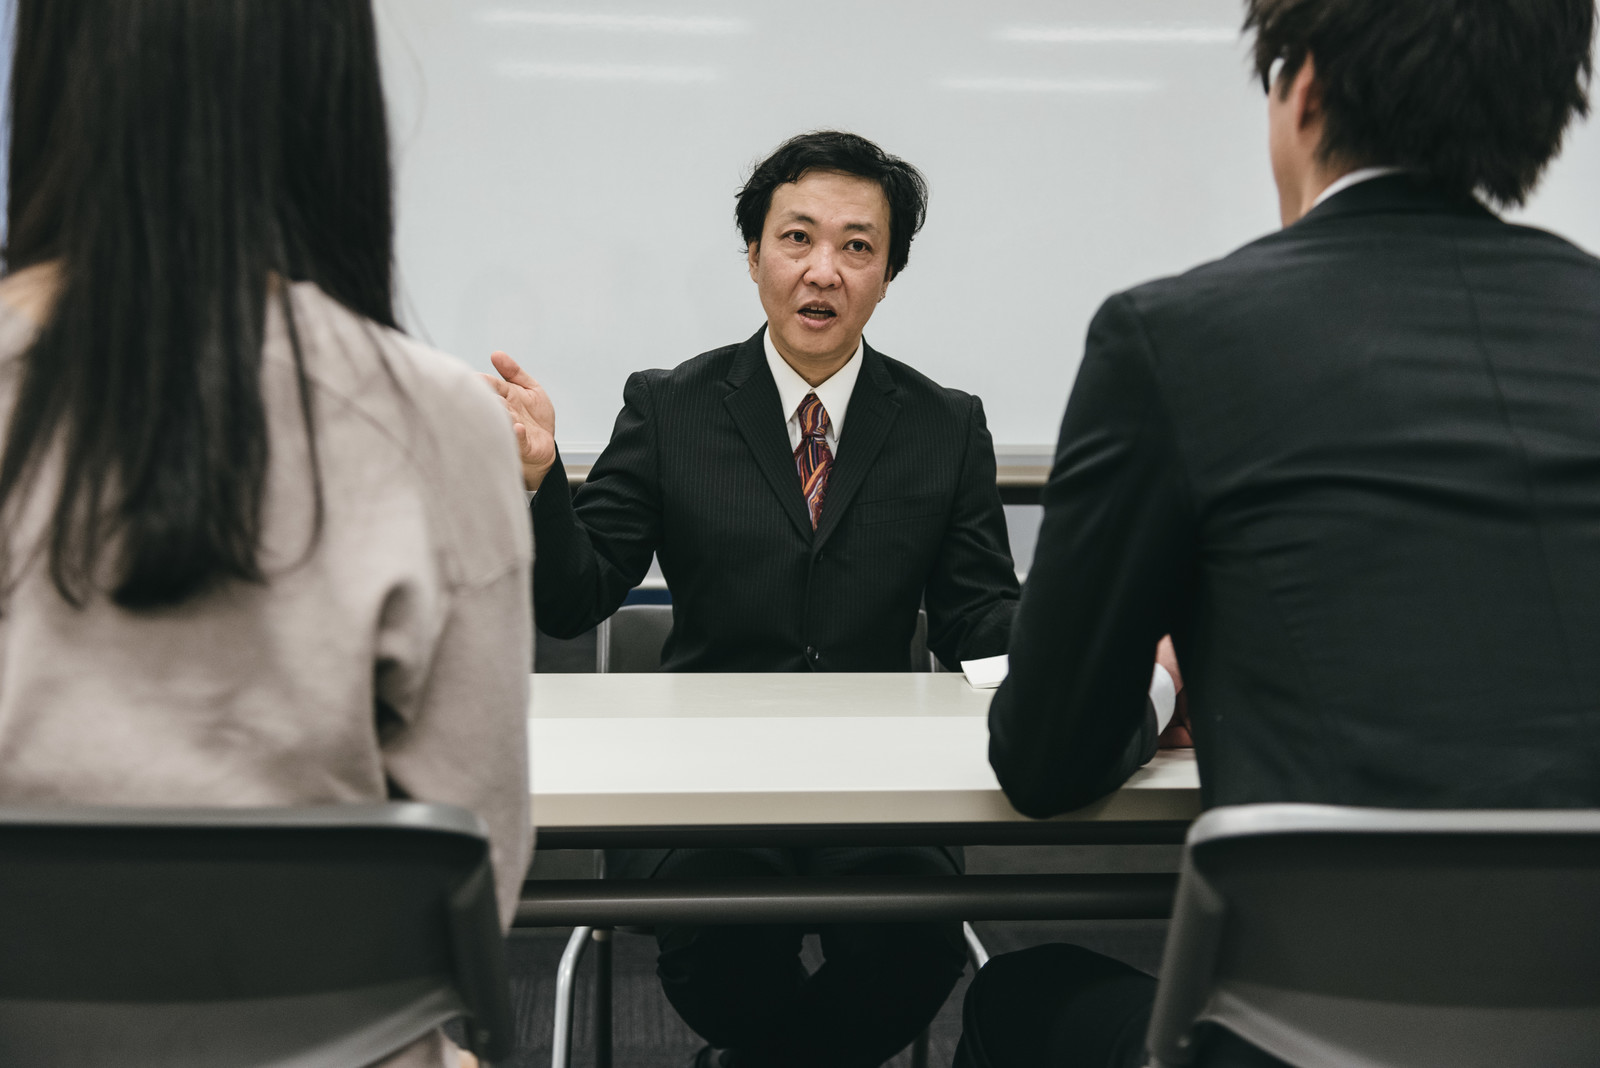 【面接の情報】大学院入試の面接何を聞かれる?【理系】